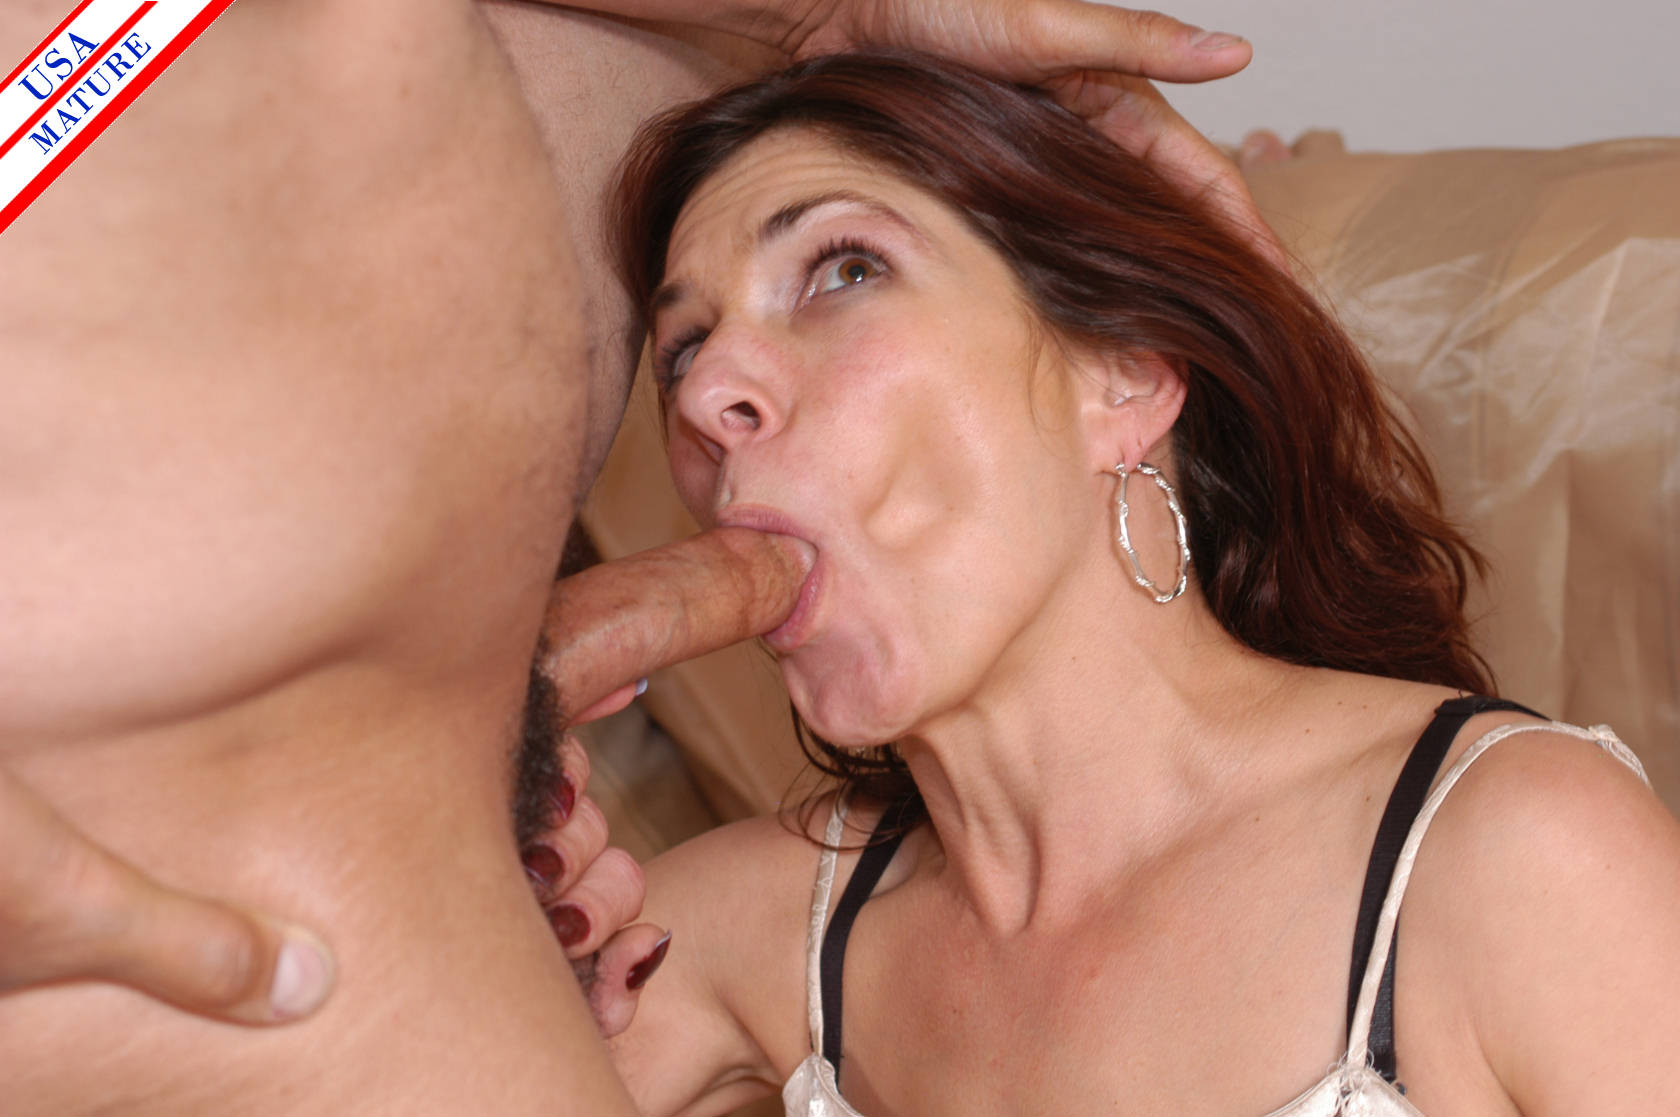 Milf cum whore mpeg